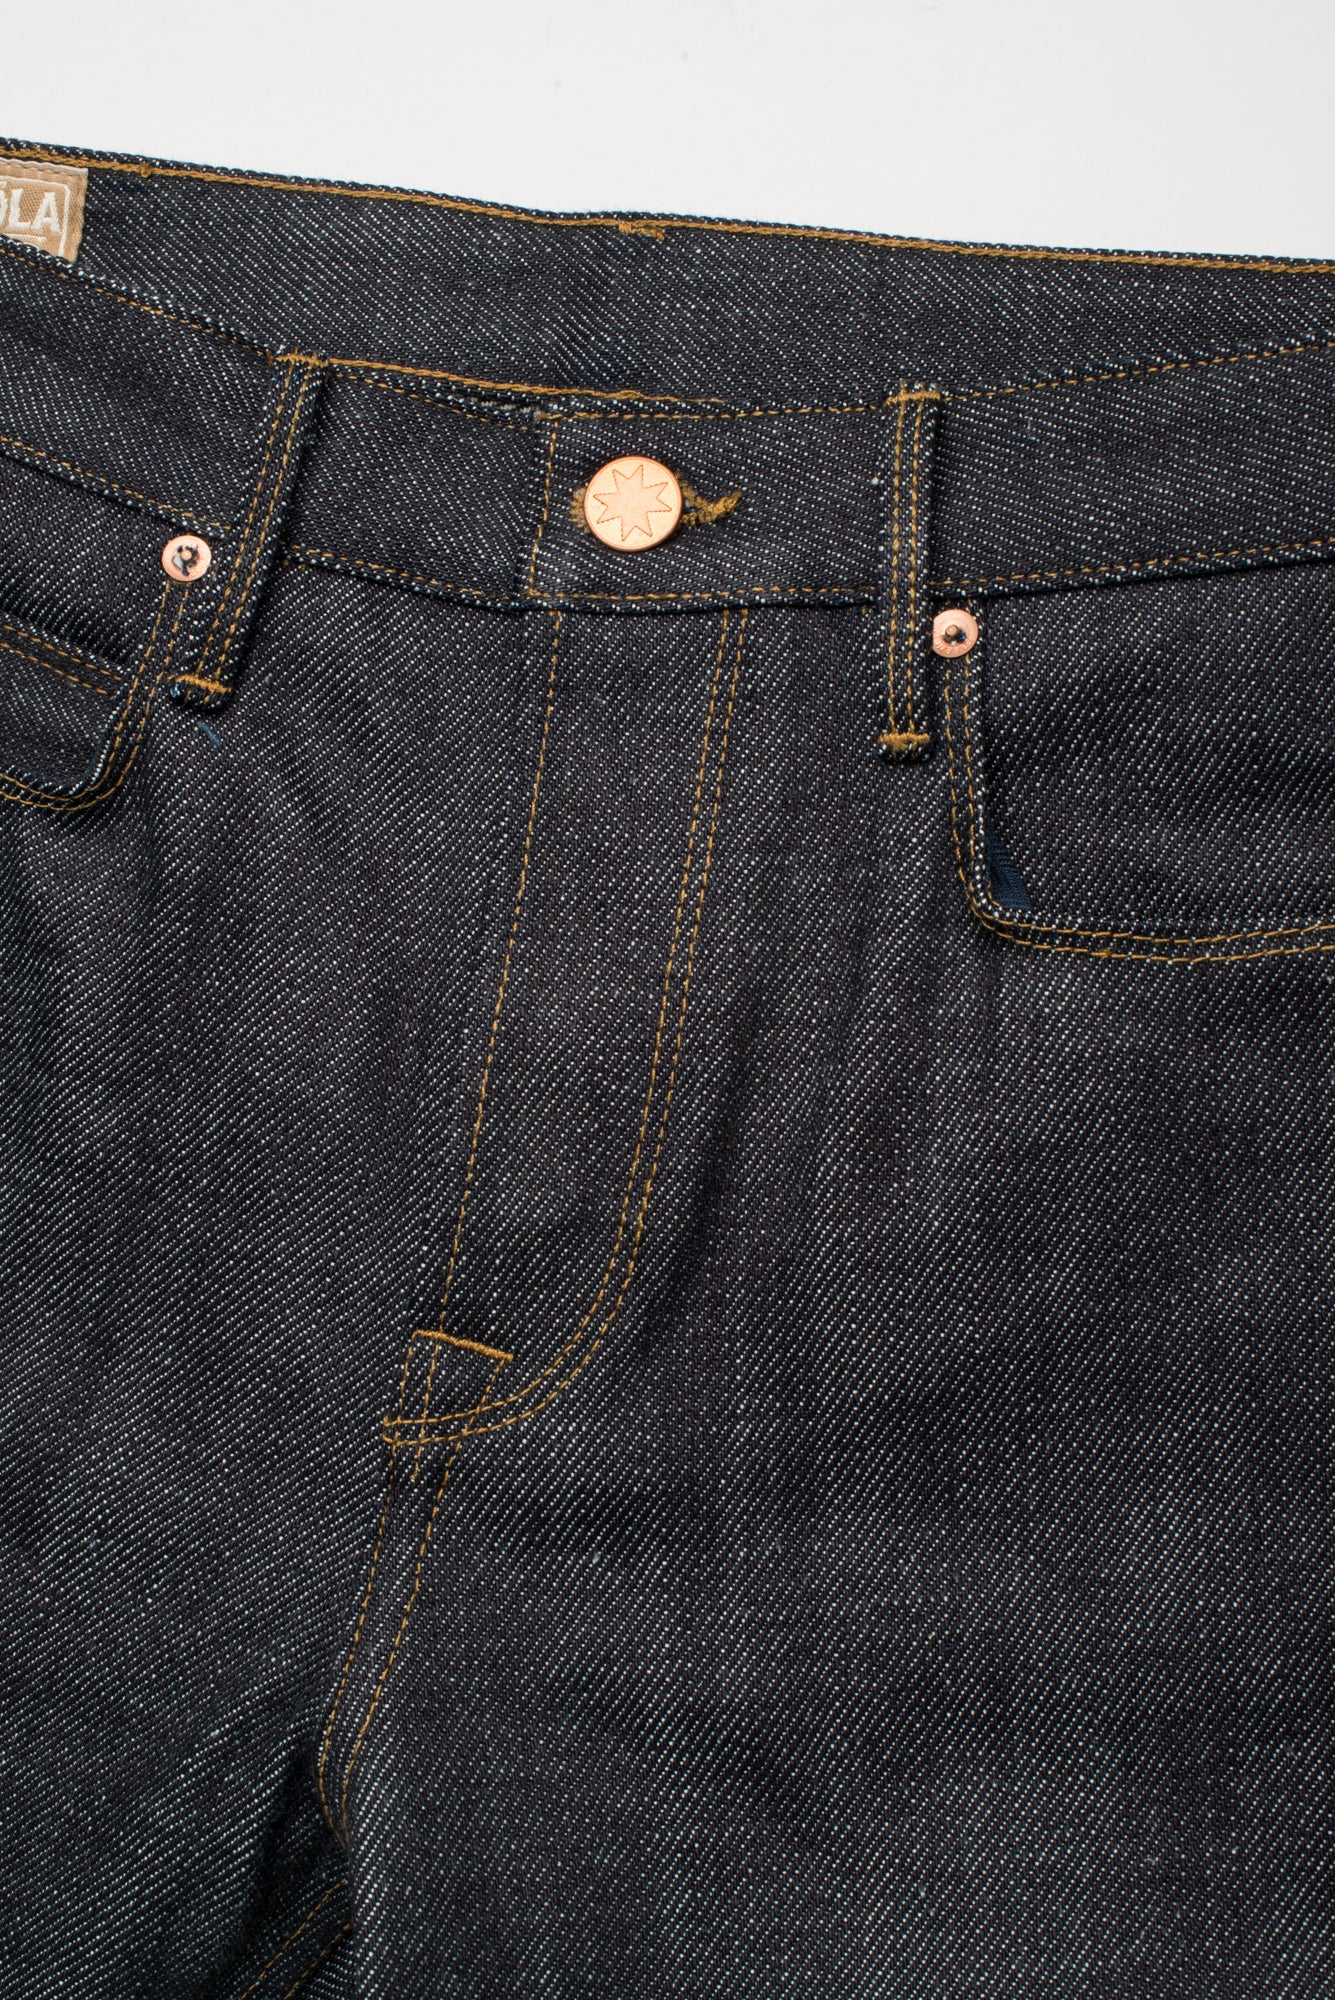 Portola Taper Raw 20 oz Japanese Denim Button